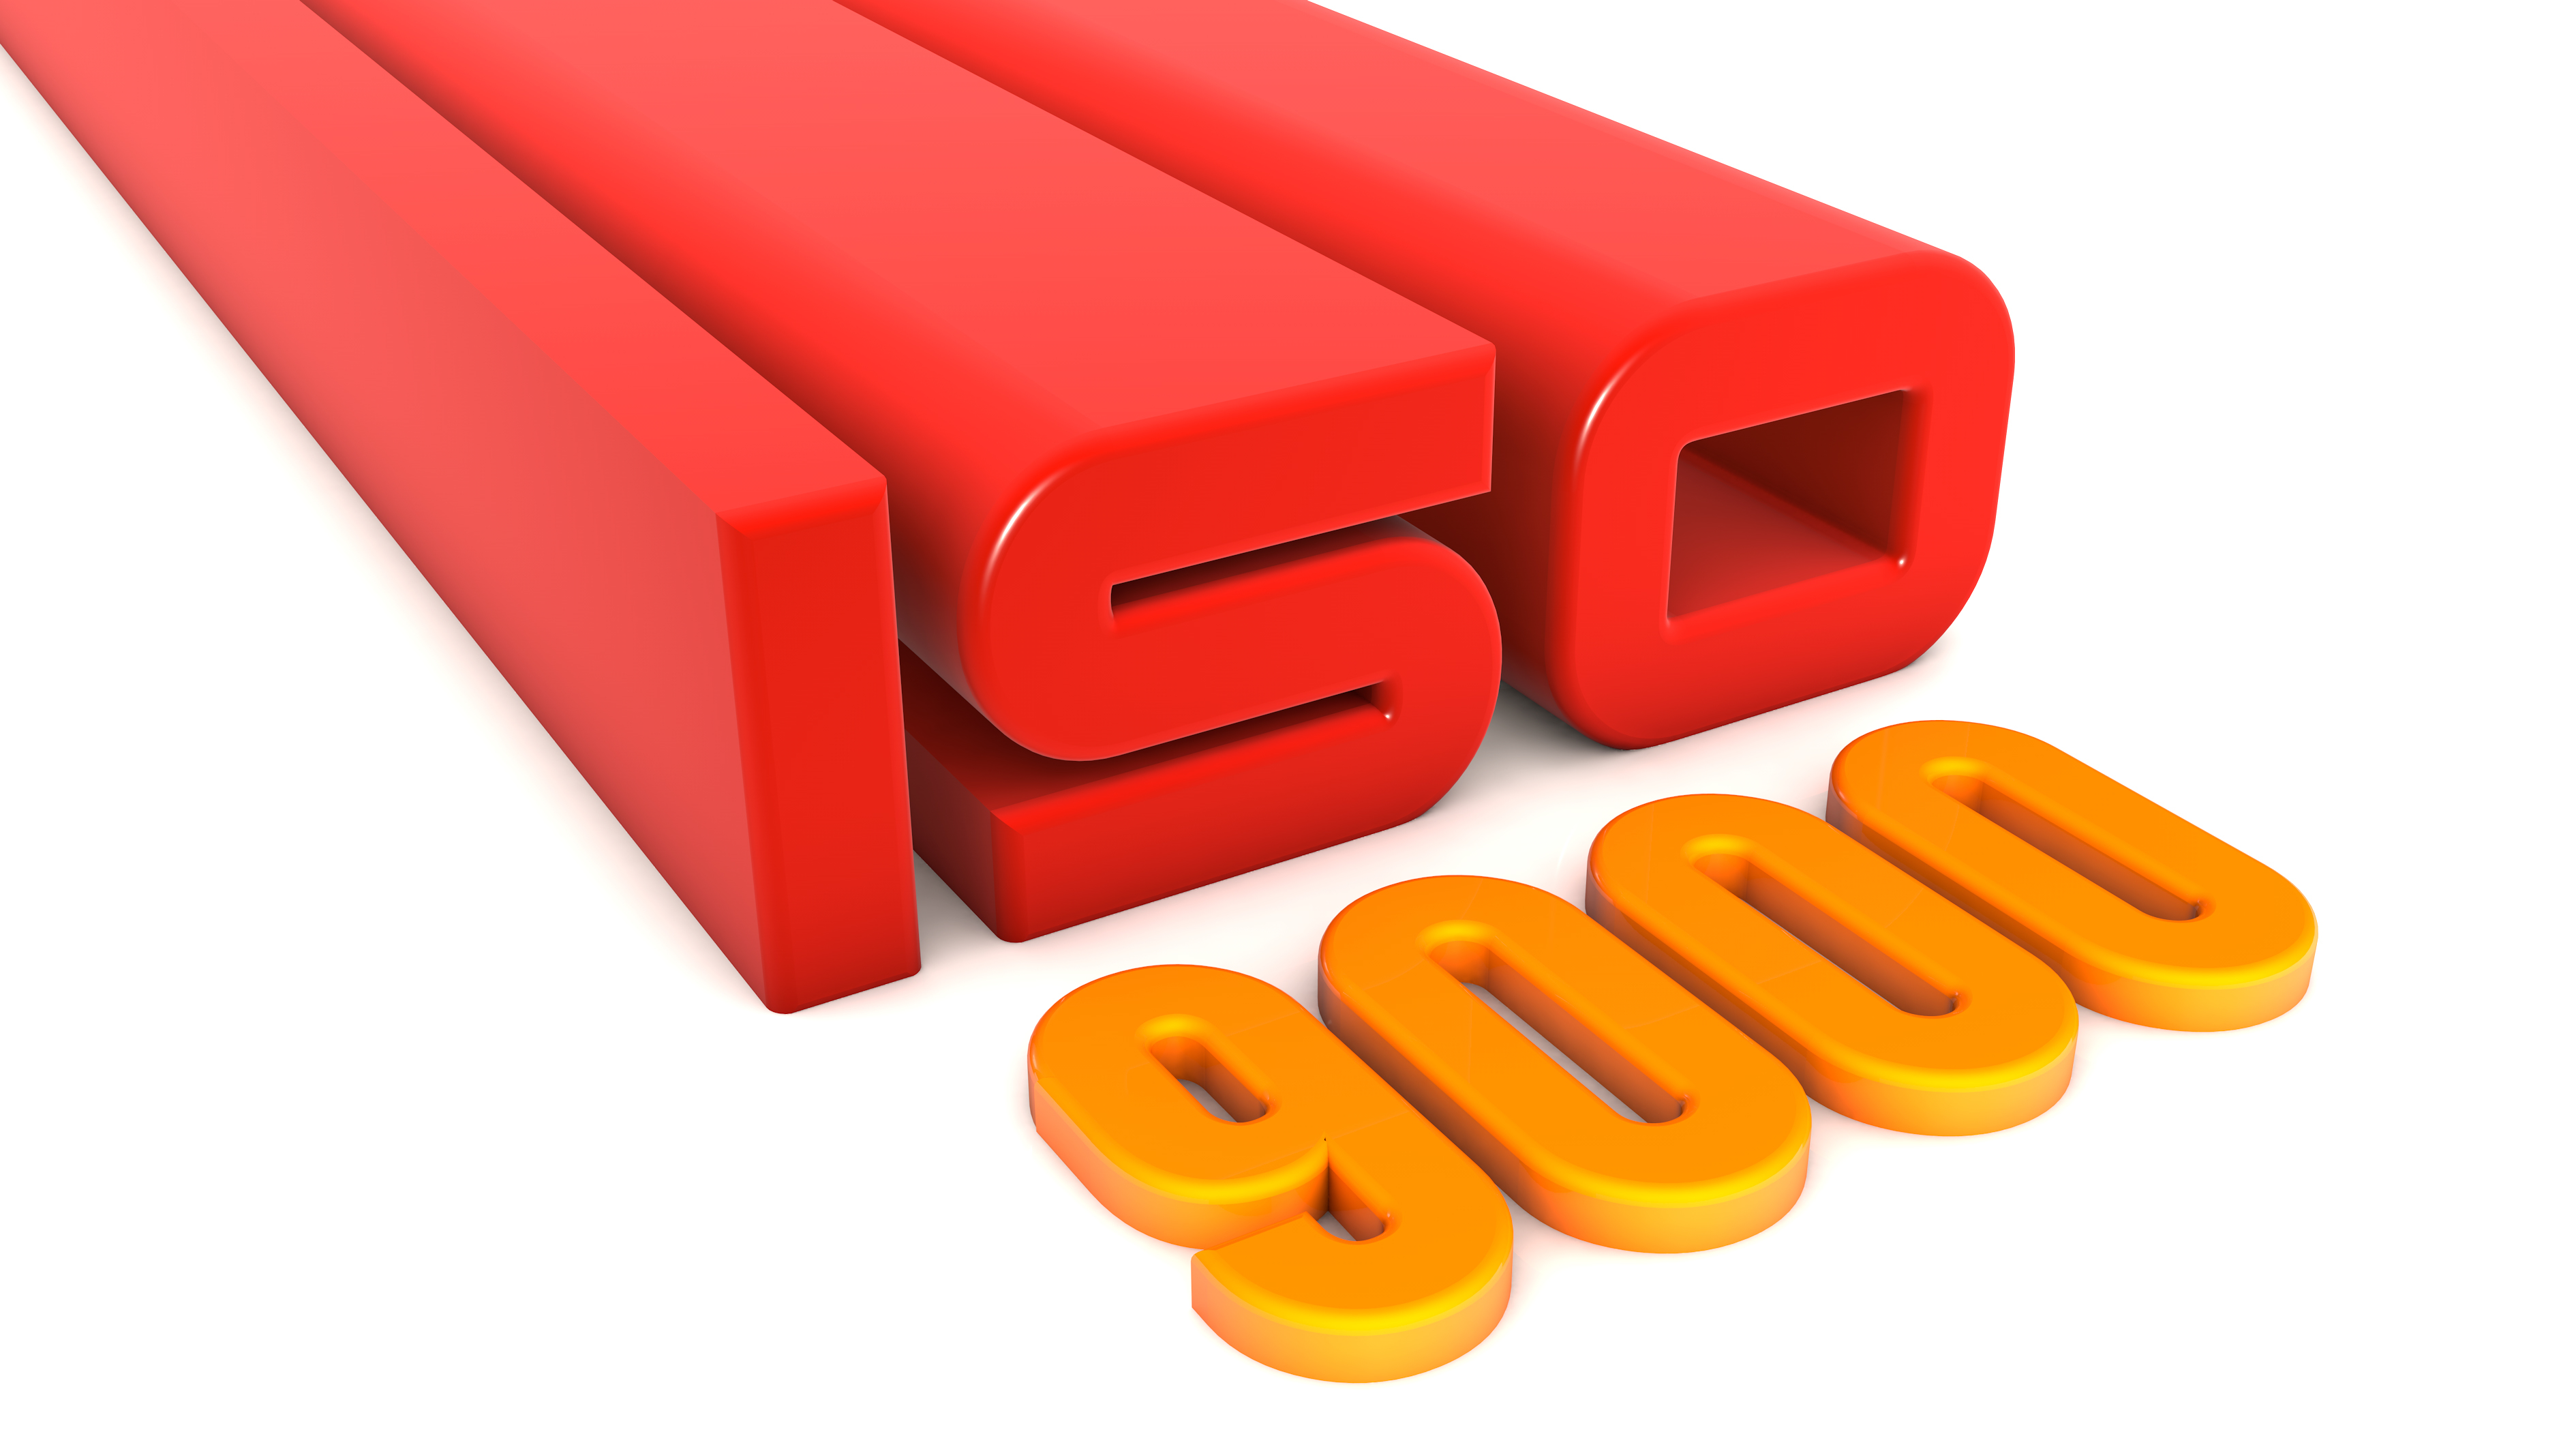 Think Iso 9000 on lean six sigma dmaic